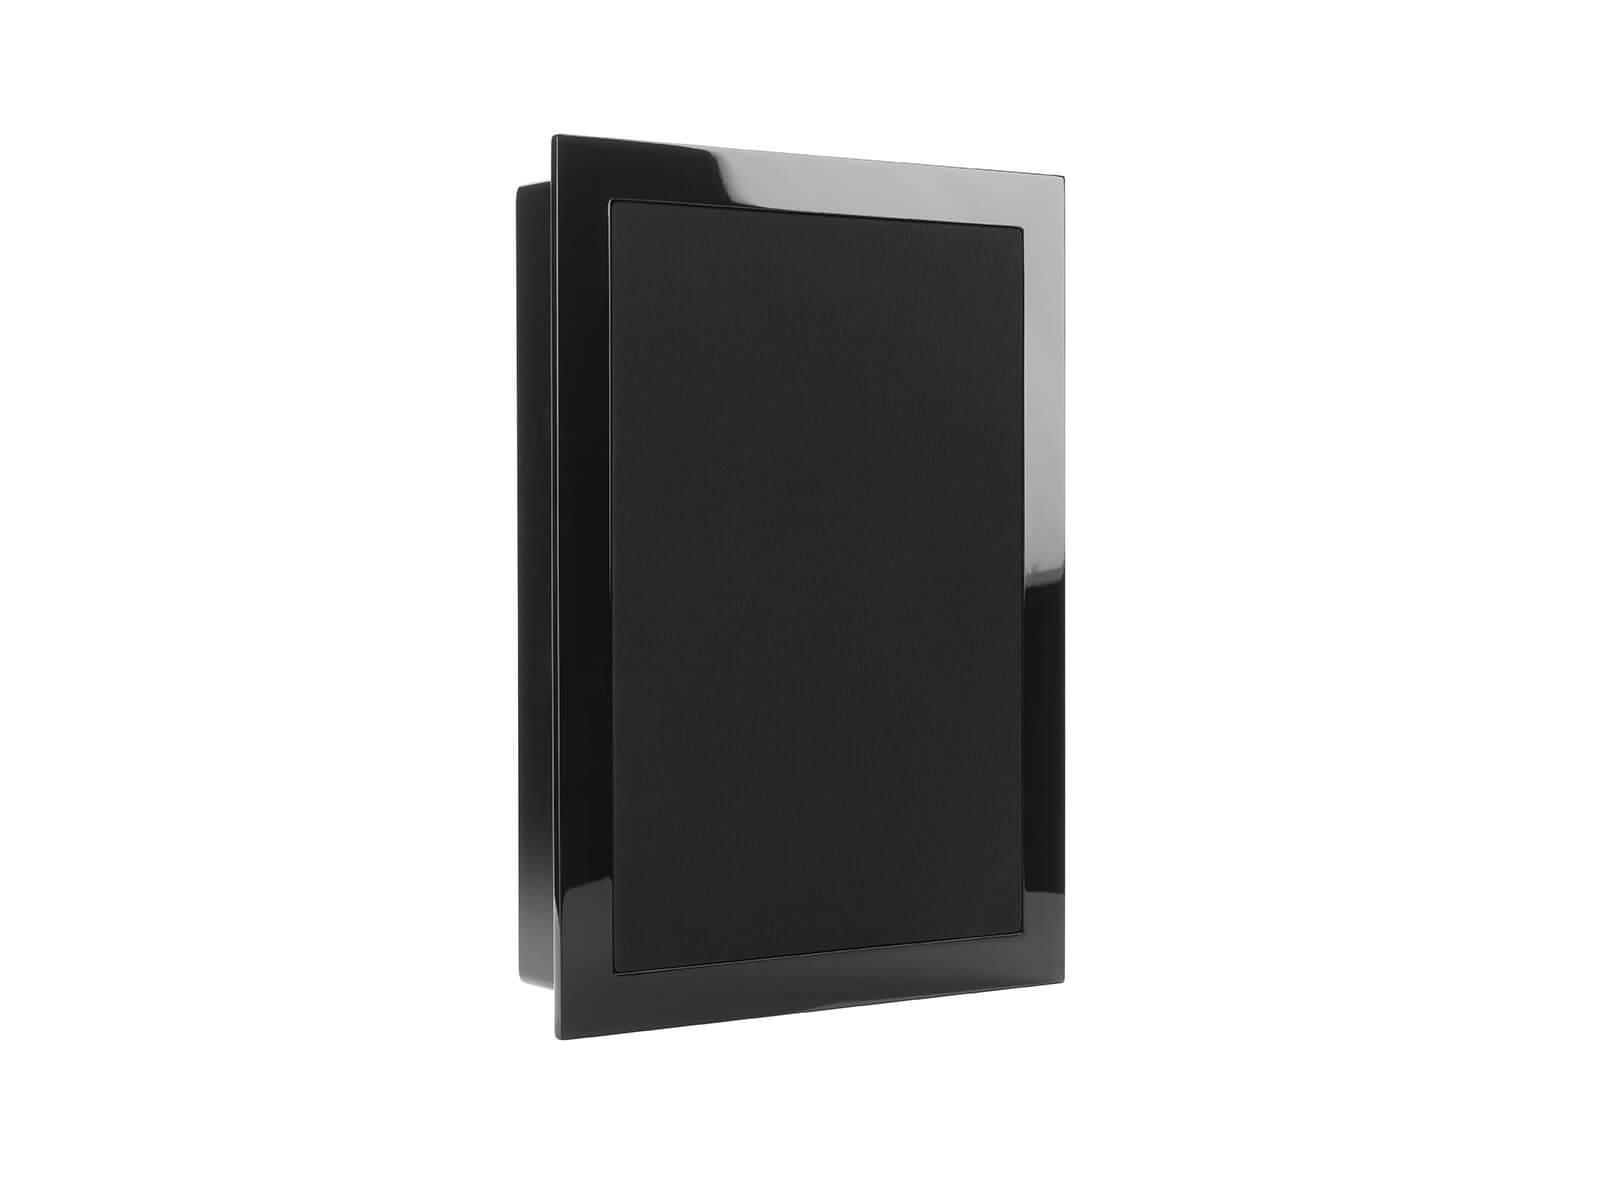 SoundFrame SF1, on-wall speakers, with a high gloss black lacquer finish.